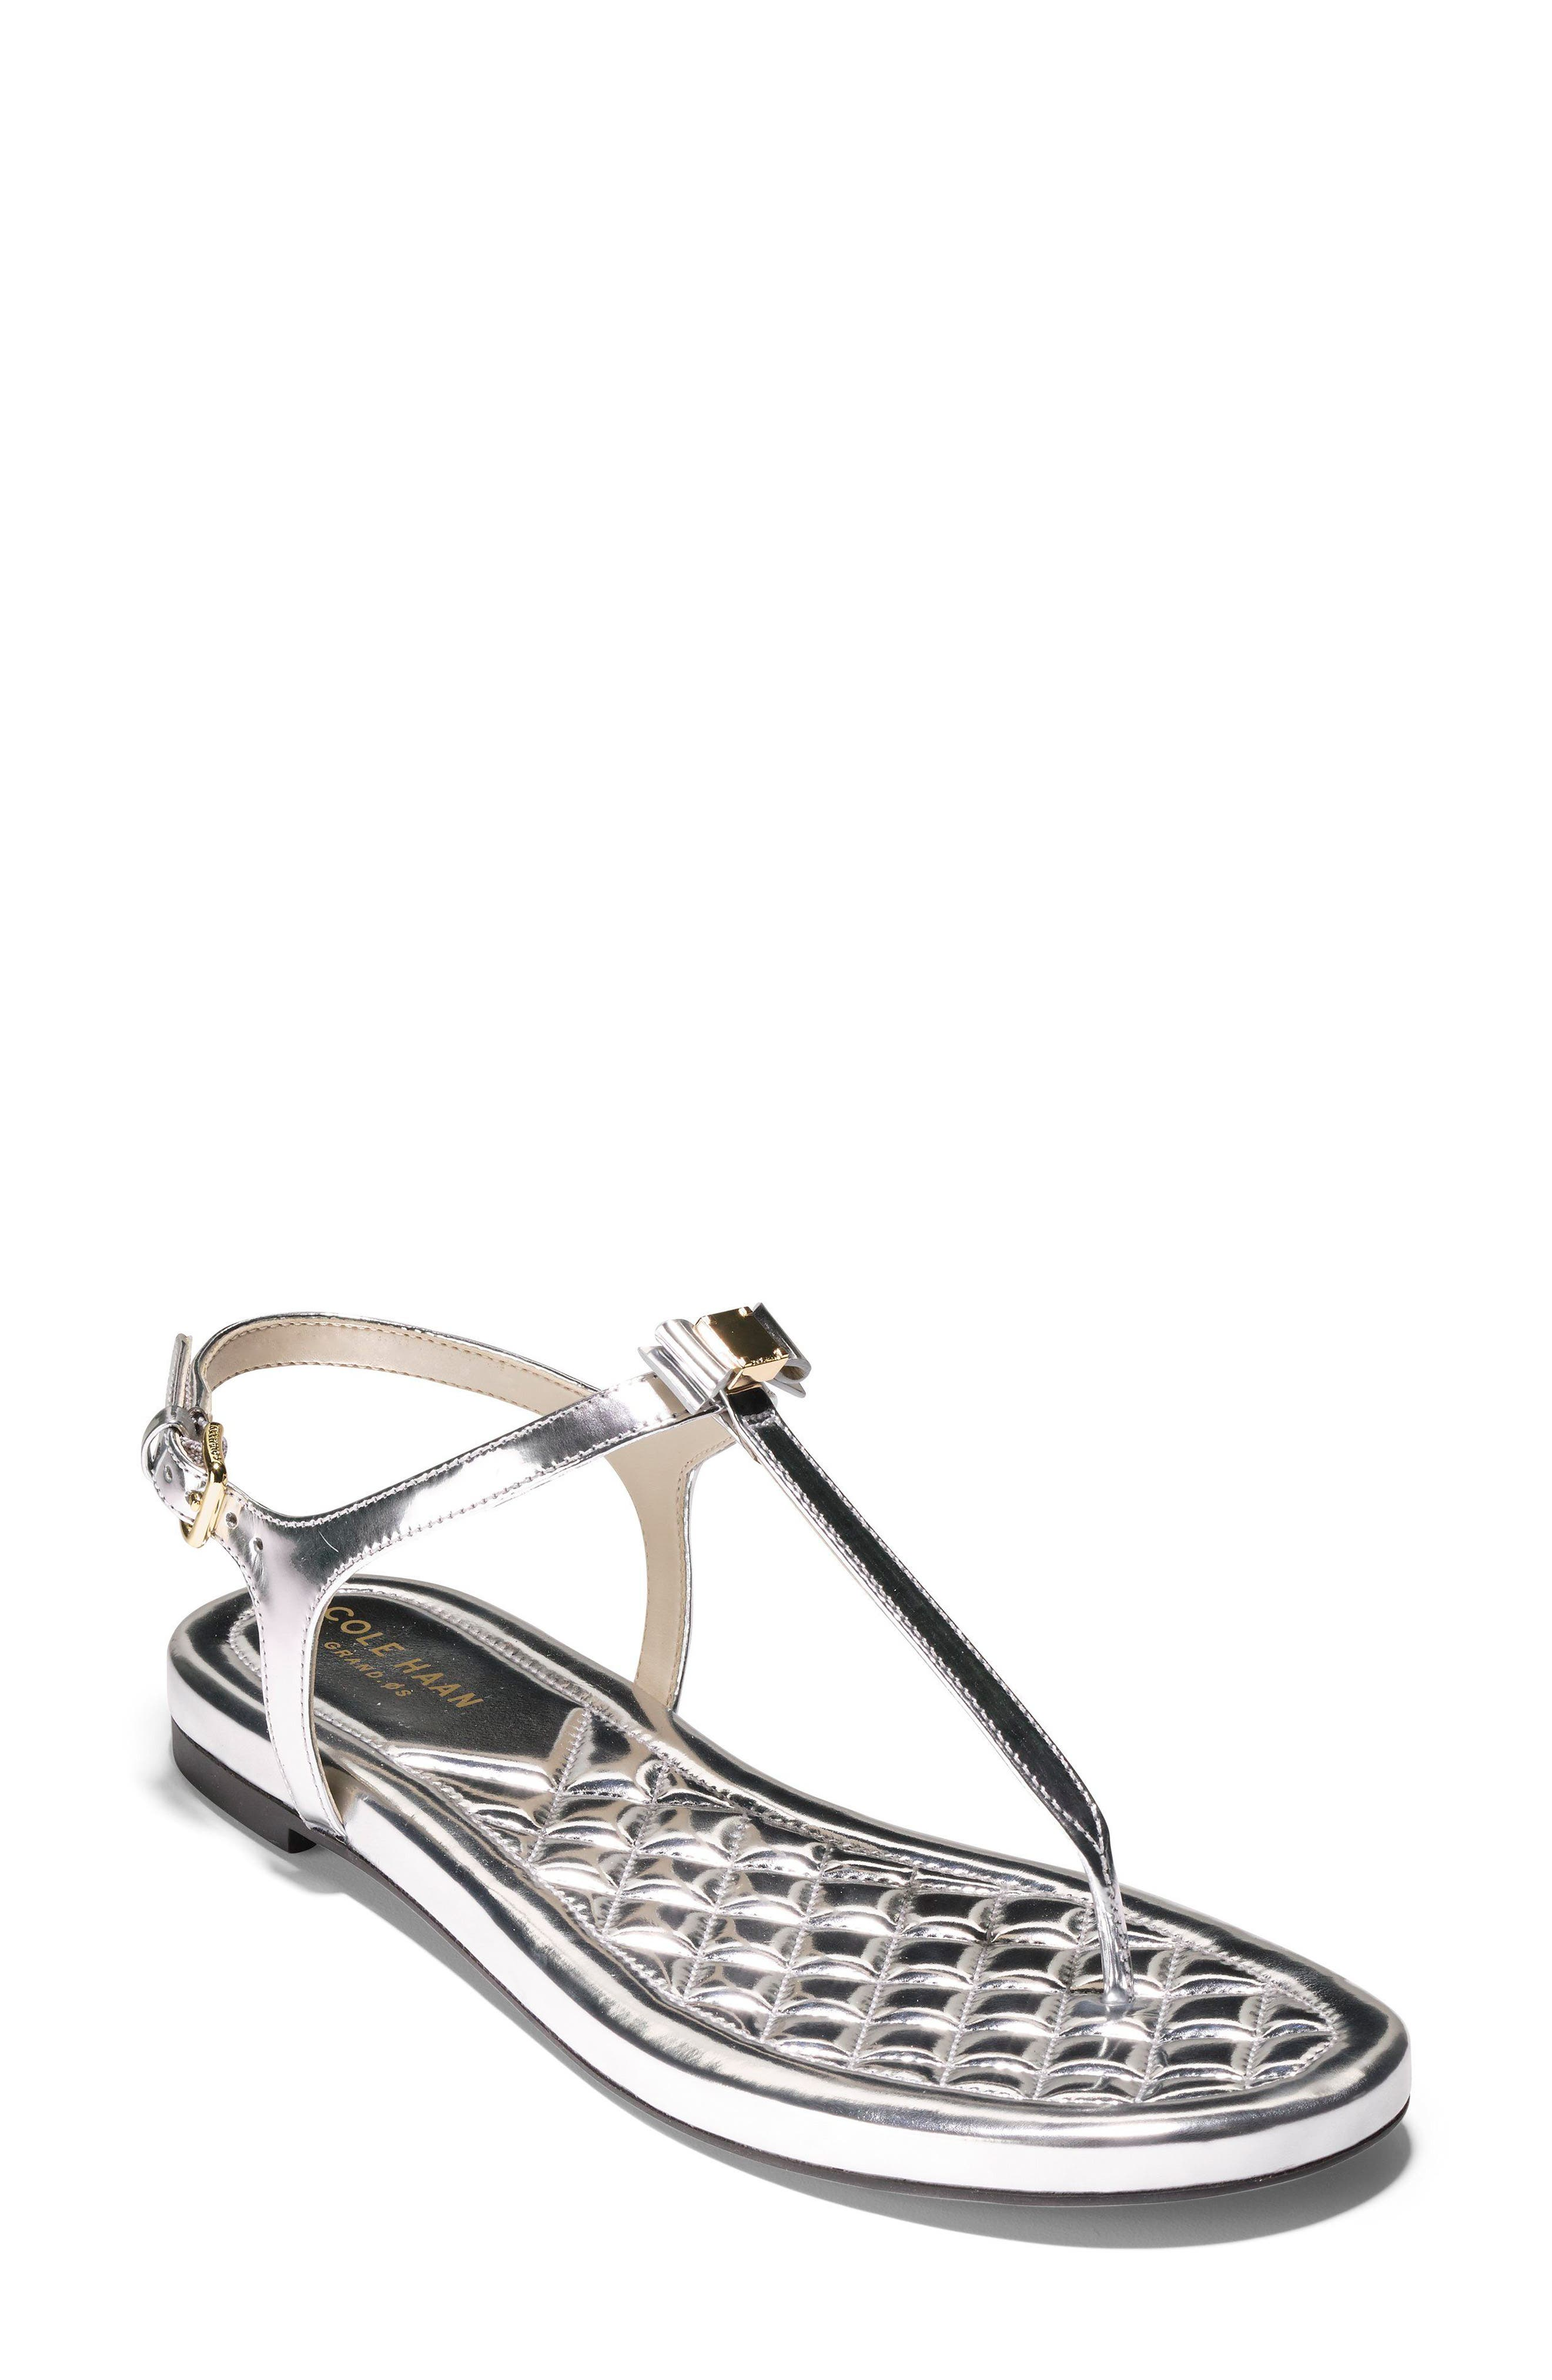 Tali Bow Sandal,                         Main,                         color, Silver Leather